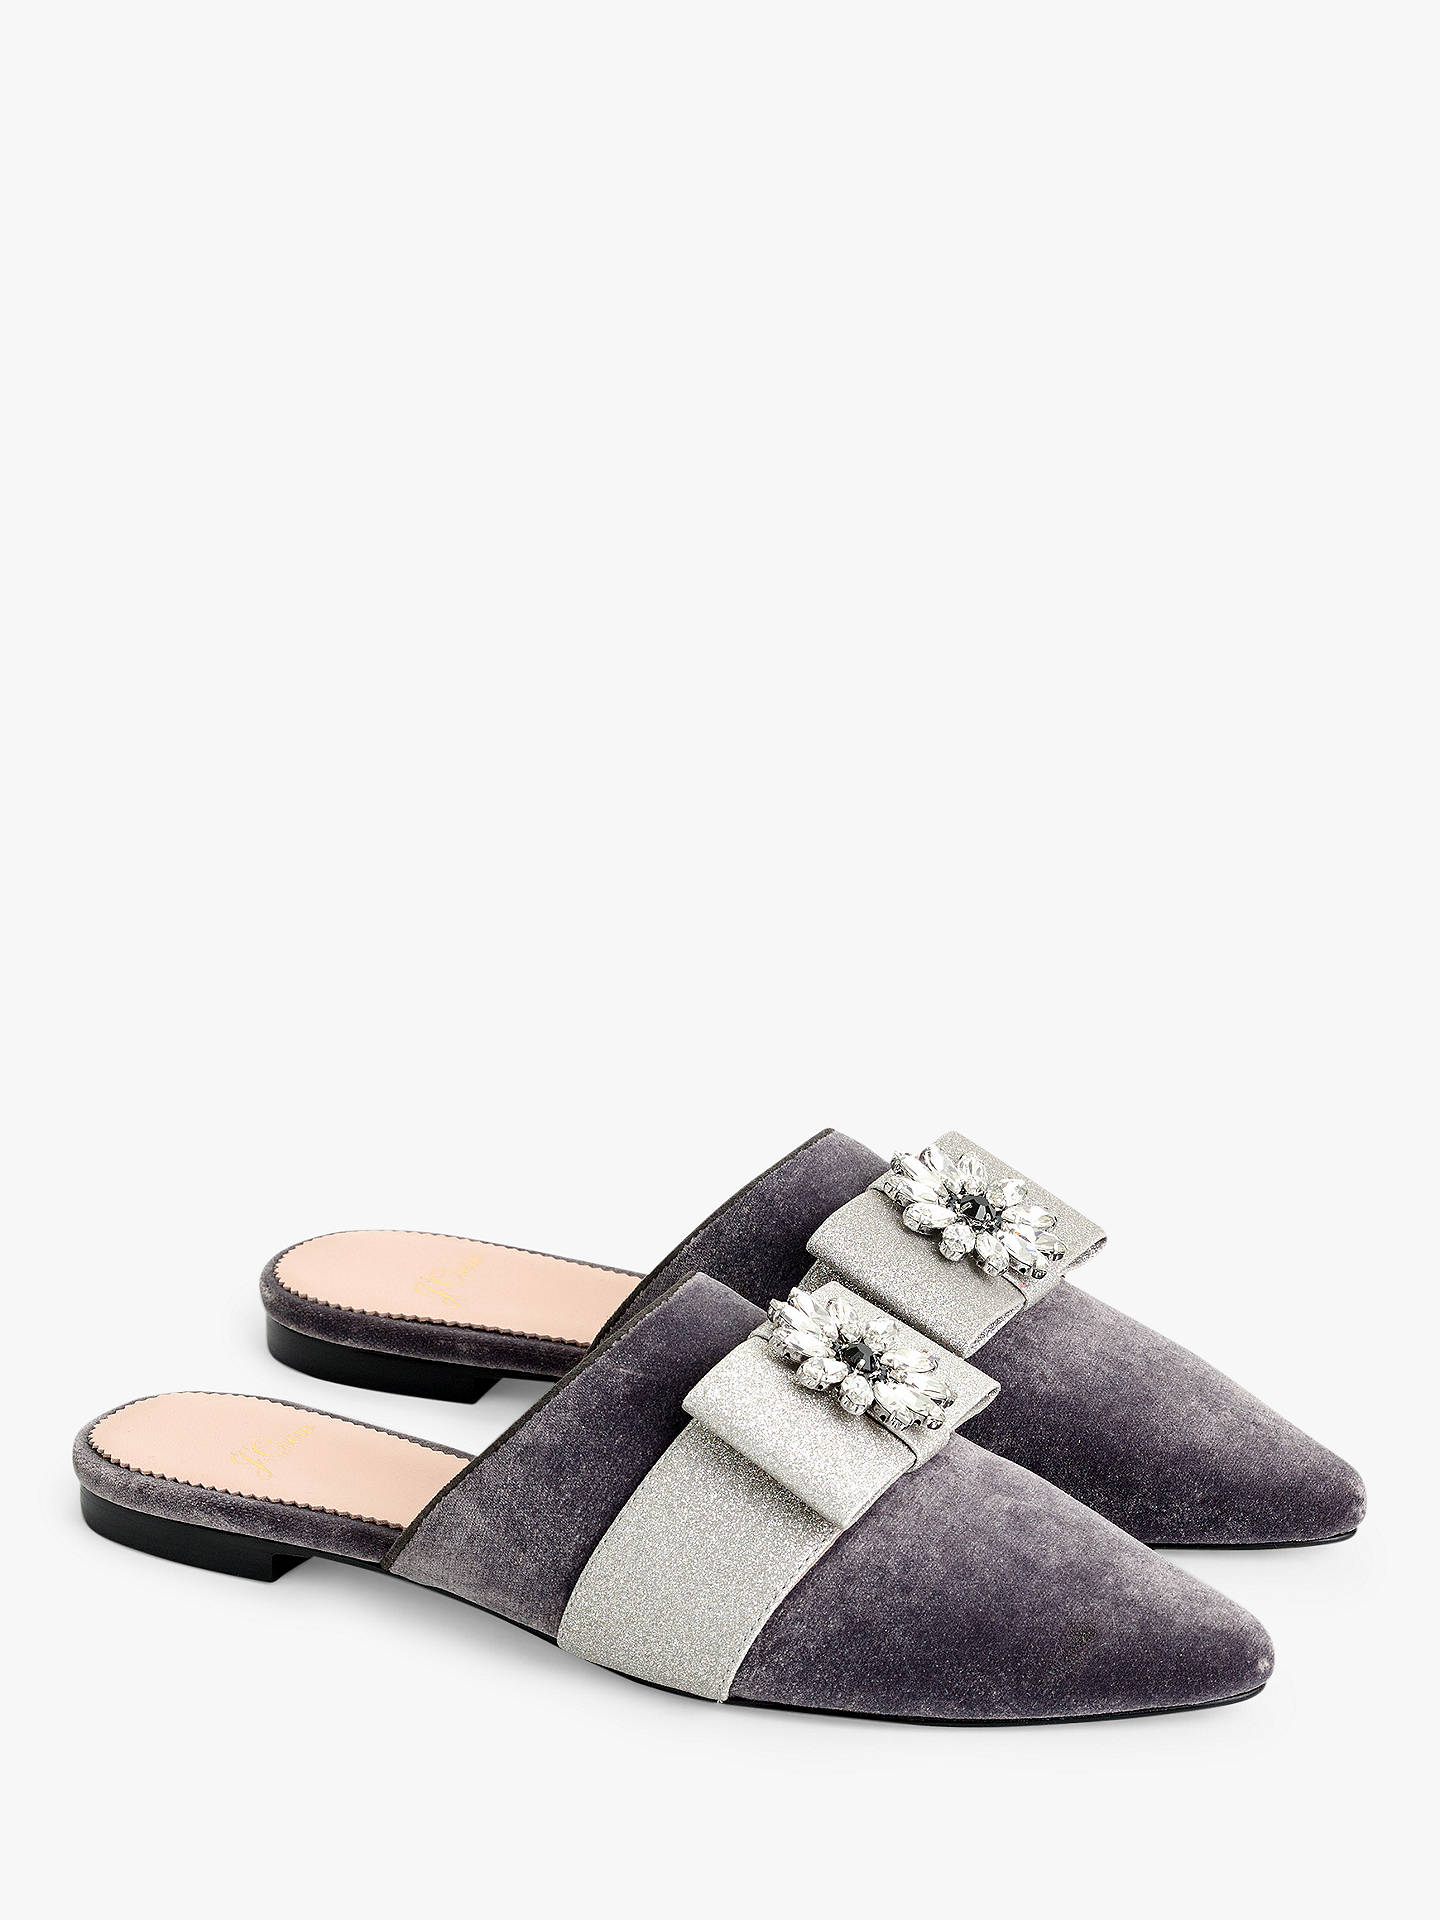 9ebefeee4 J.Crew Knot Glitter Bow Flat Mules, Grey/Silver at John Lewis & Partners